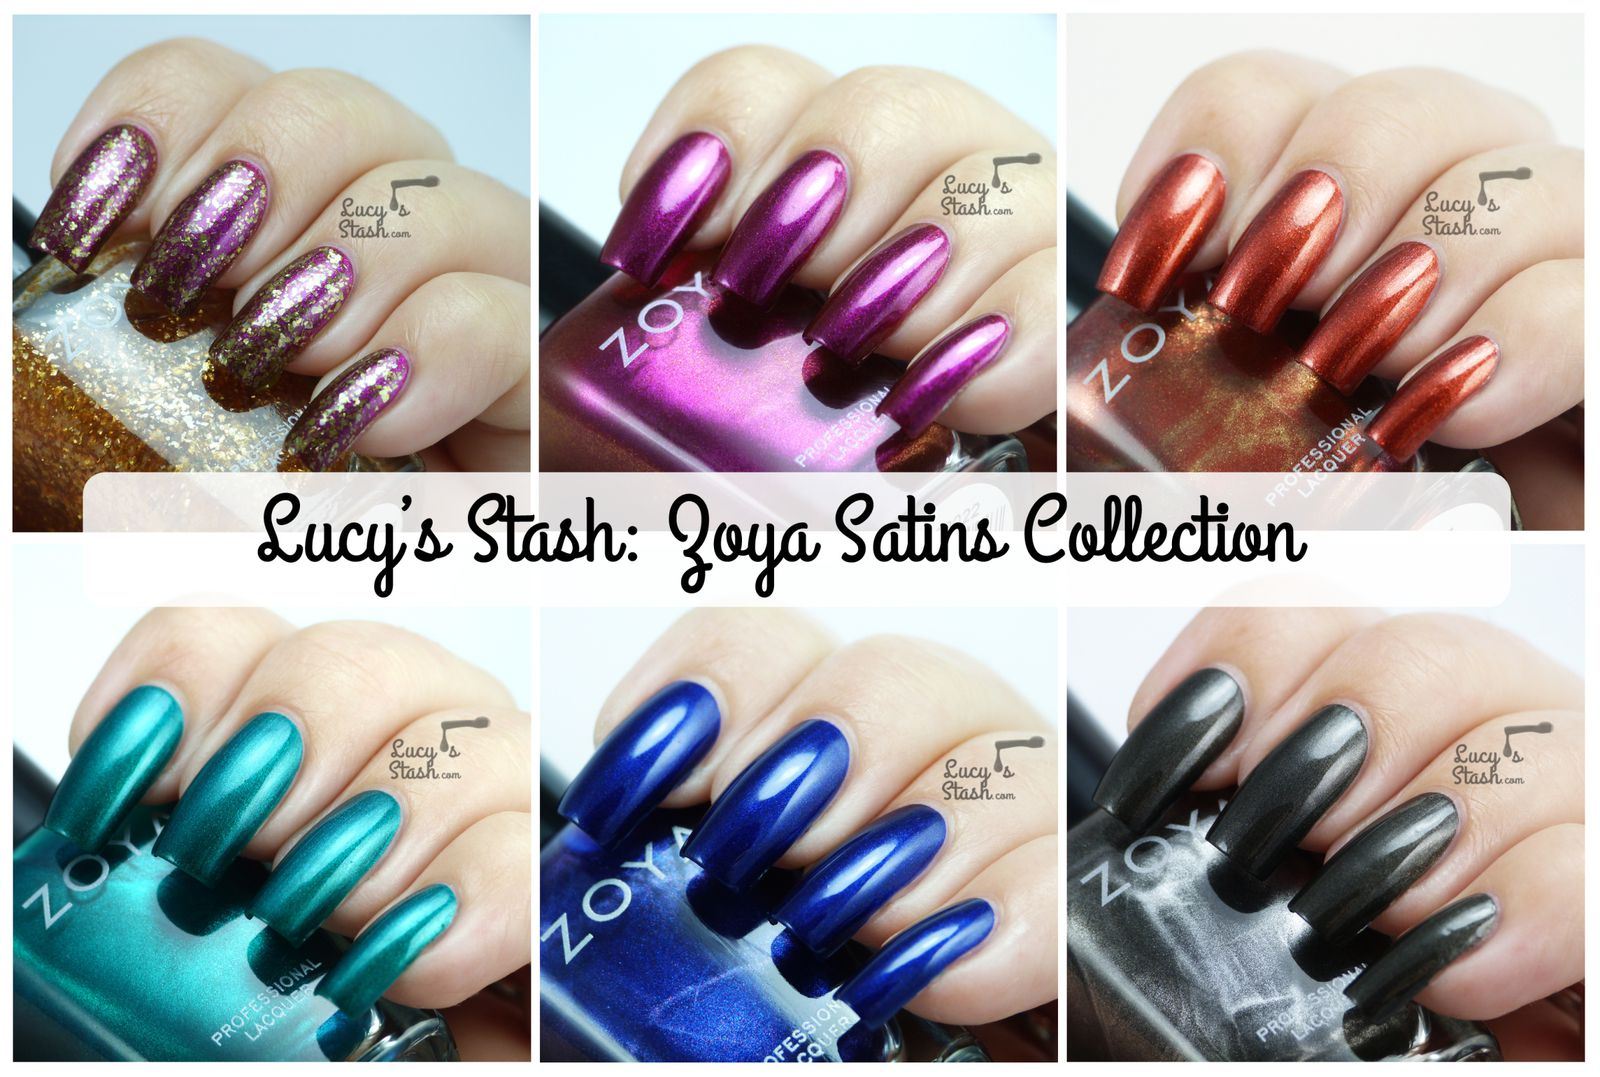 Zoya Satins Collection for Fall 2013 - Review and swatches